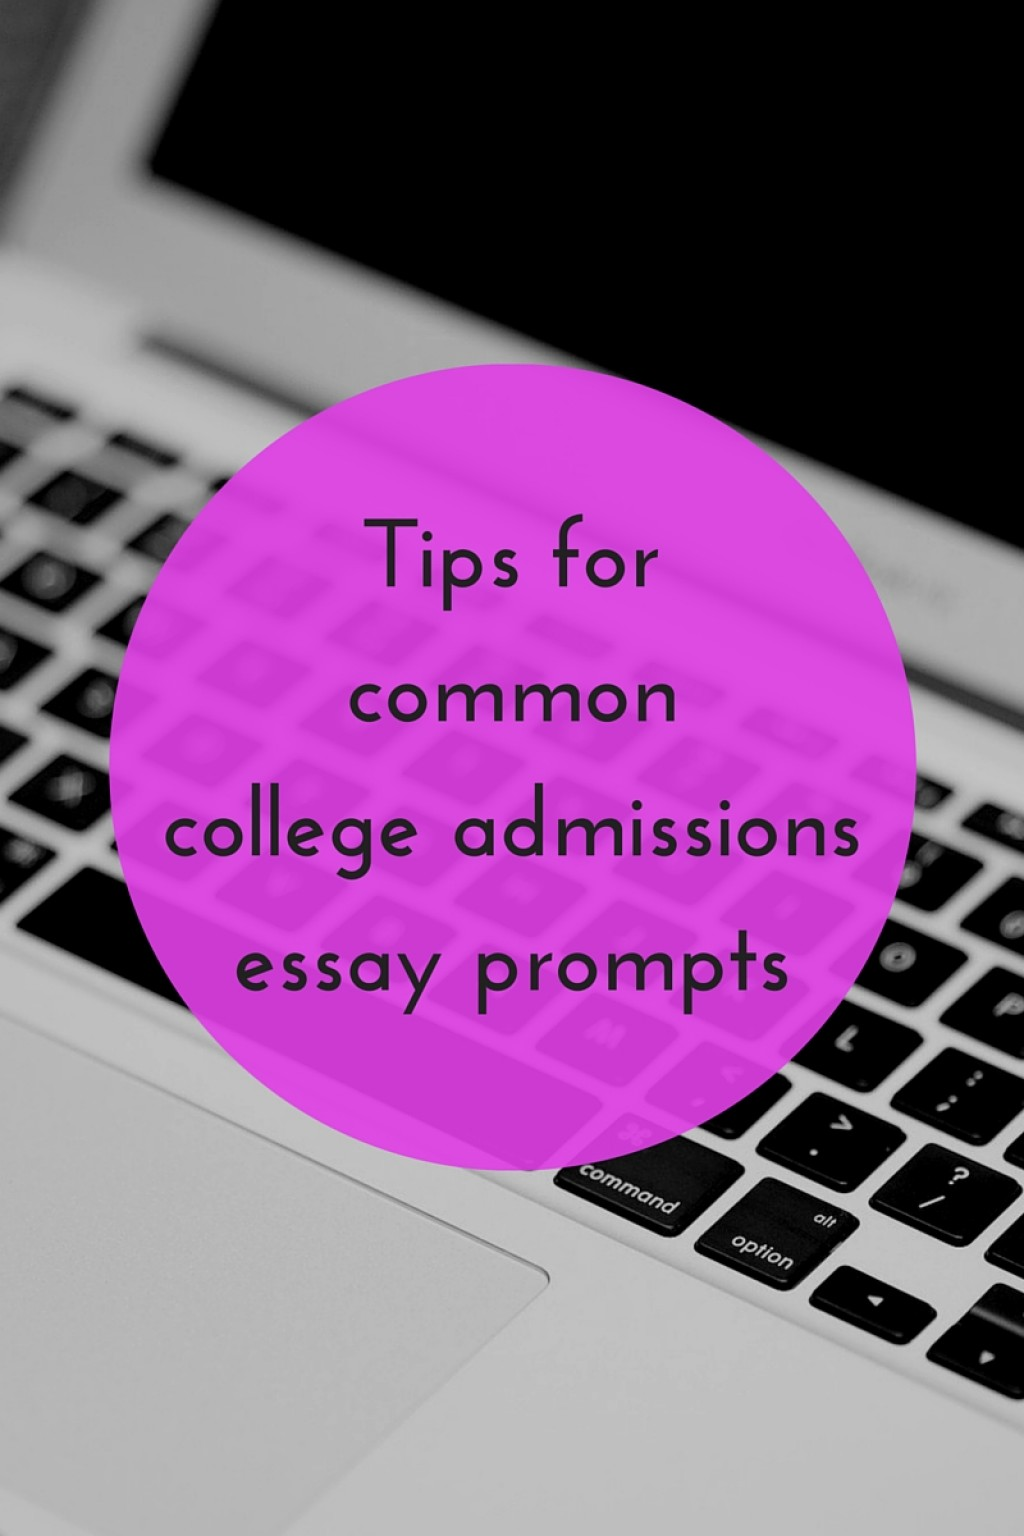 016 Essay Example College Prompts Tips For Common Shocking 2015 Admission Large